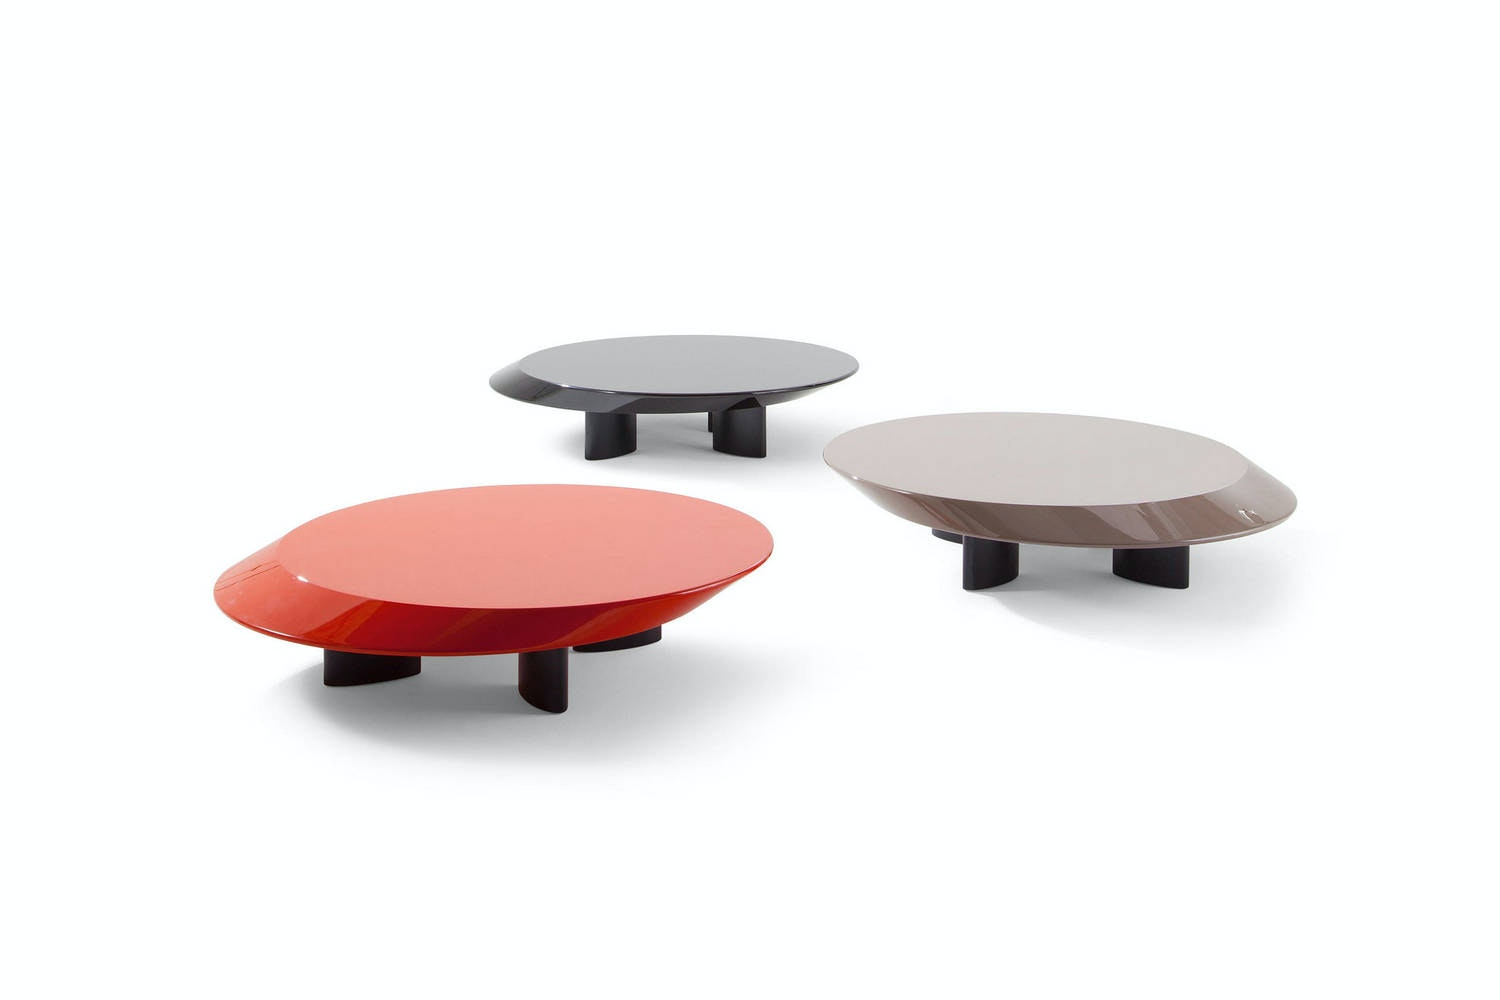 520 Accordo Coffee Table by Charlotte Perriand for Cassina